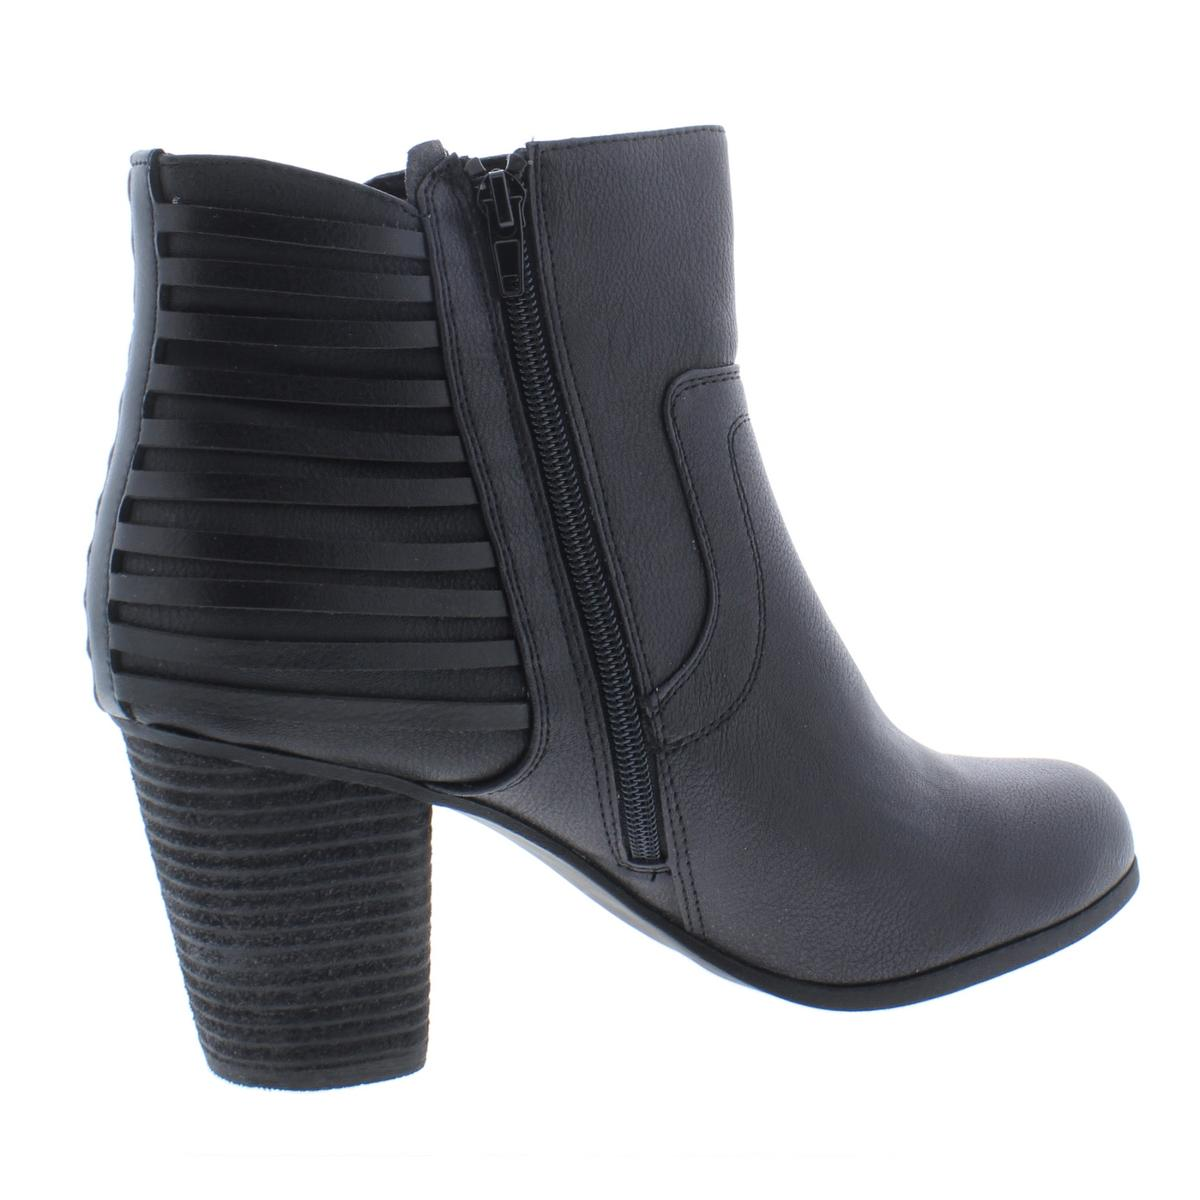 a34c854aa93 Madden Girl Womens Dusk Black Stacked BOOTIES Shoes 7.5 Medium (b M ...